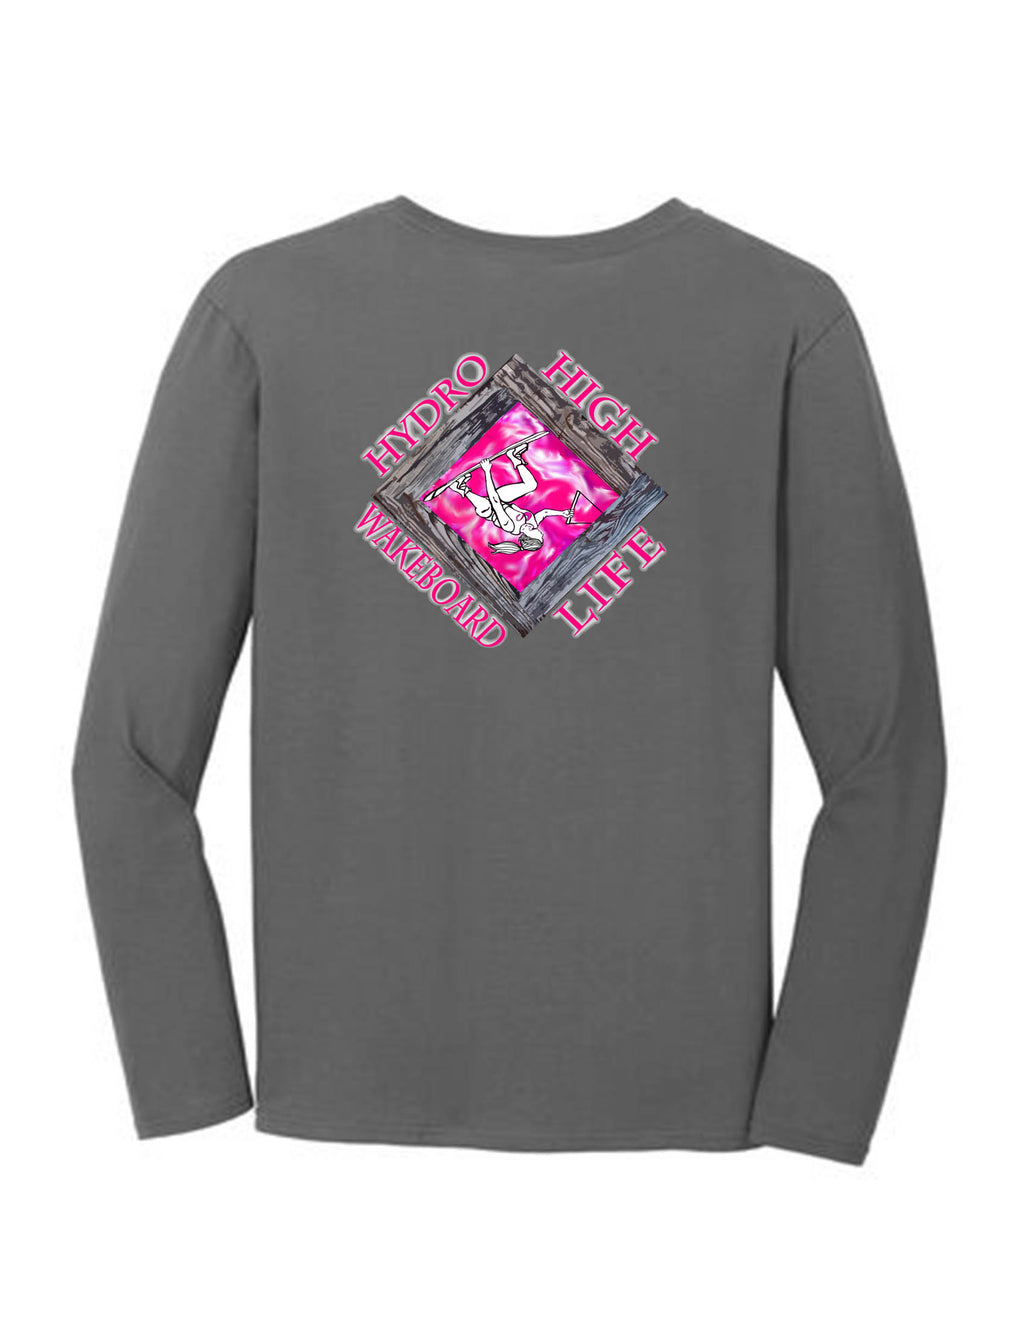 Wakeboarder Girl in Diamond Long Sleeve T-Shirt Back Design